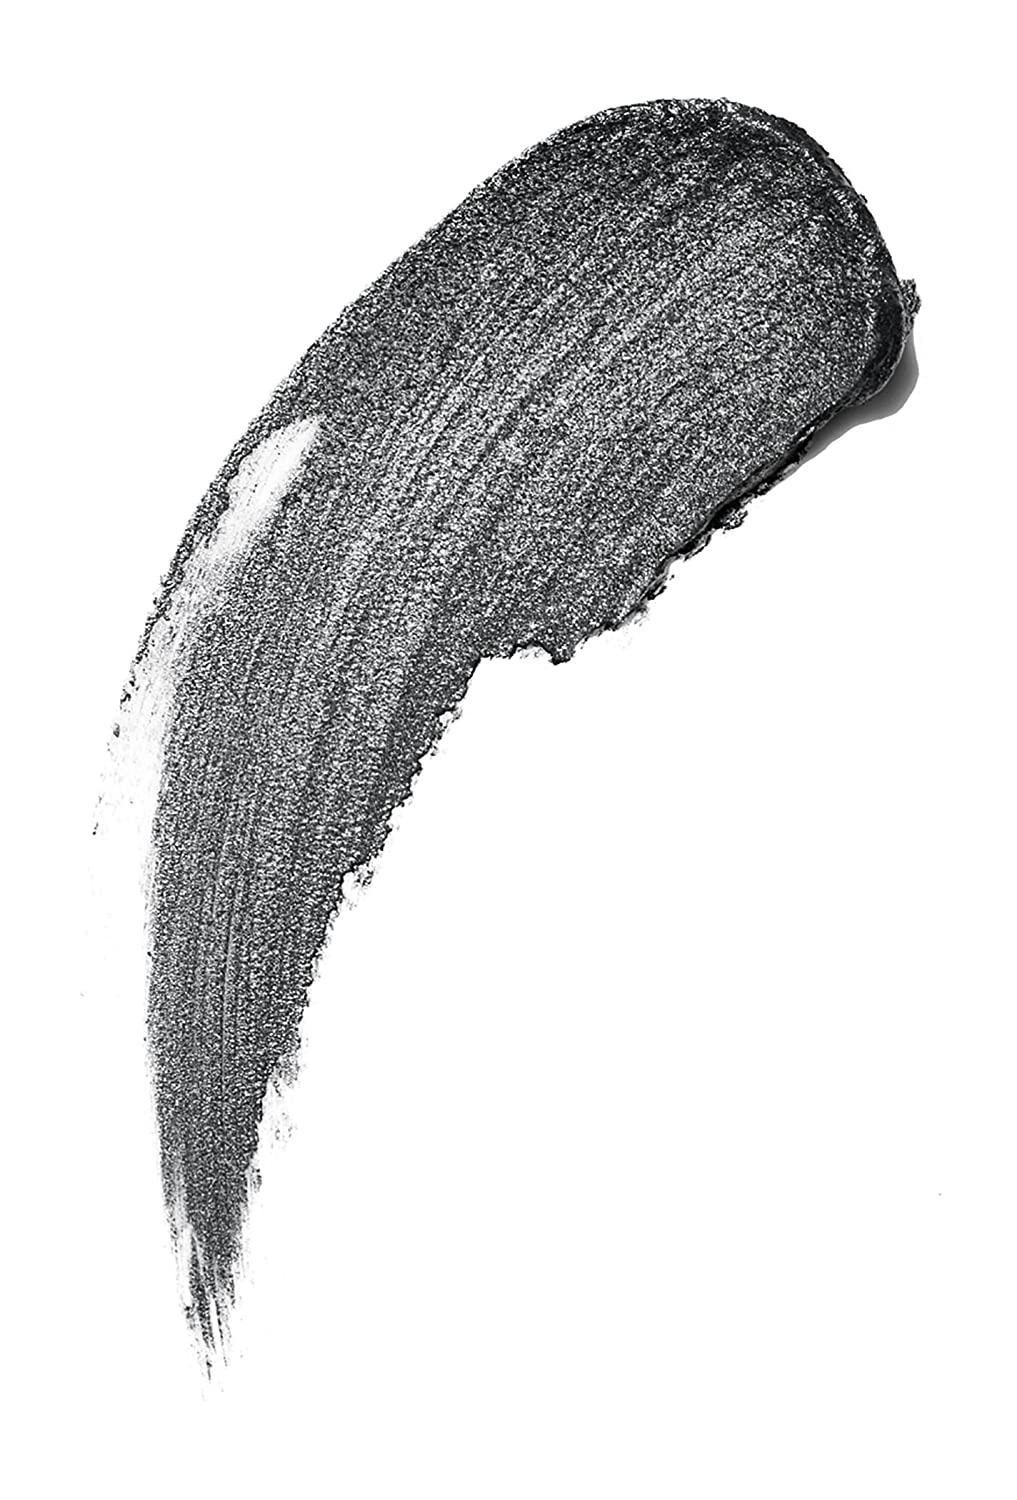 Amazon.com : Max Factor Excess shimmer eyeshadow - # 30 onyx by